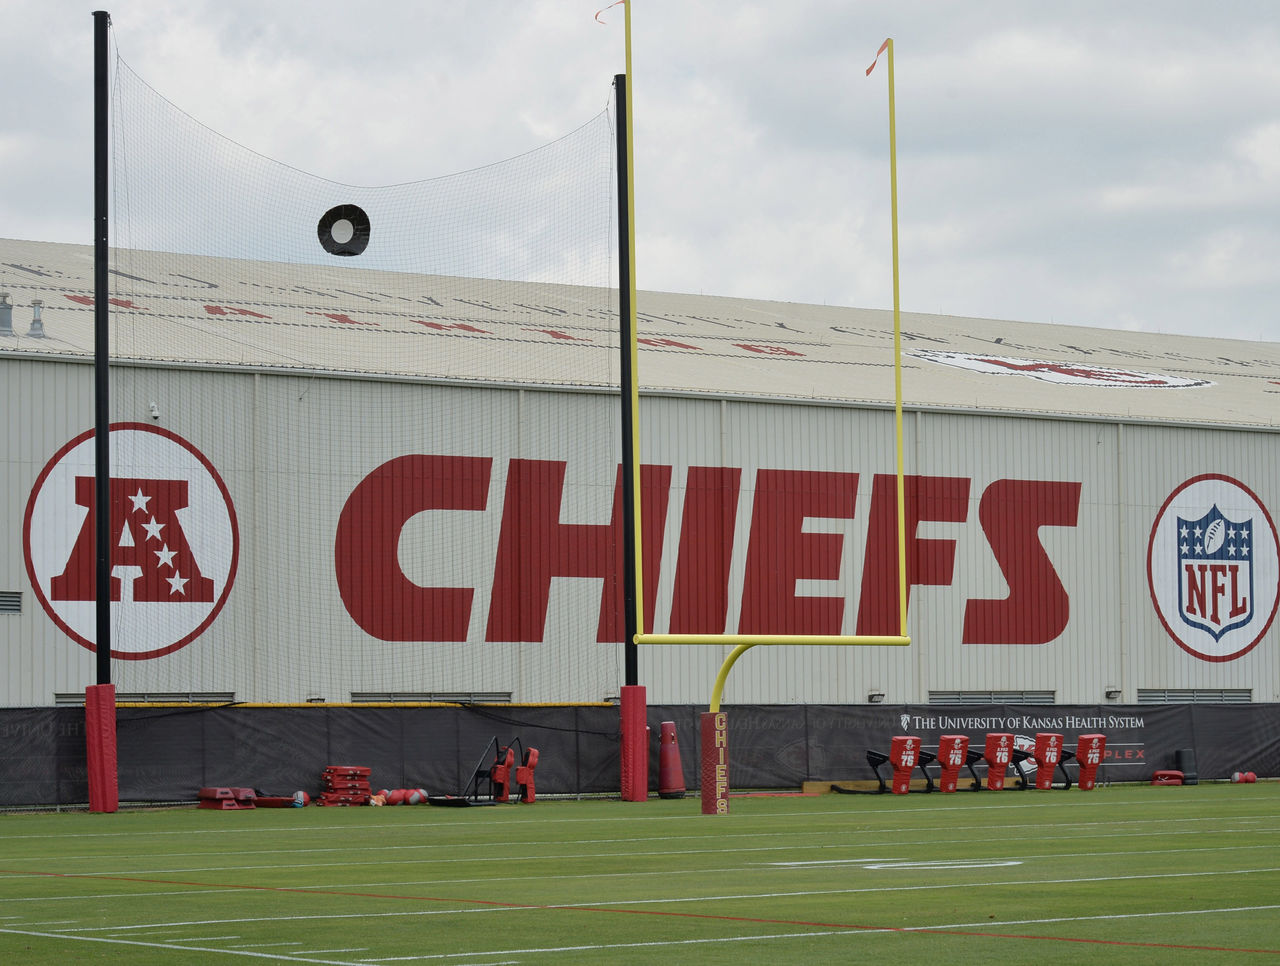 Cropped 2017 06 13t191621z 1895494927 nocid rtrmadp 3 nfl kansas city chiefs minicamp